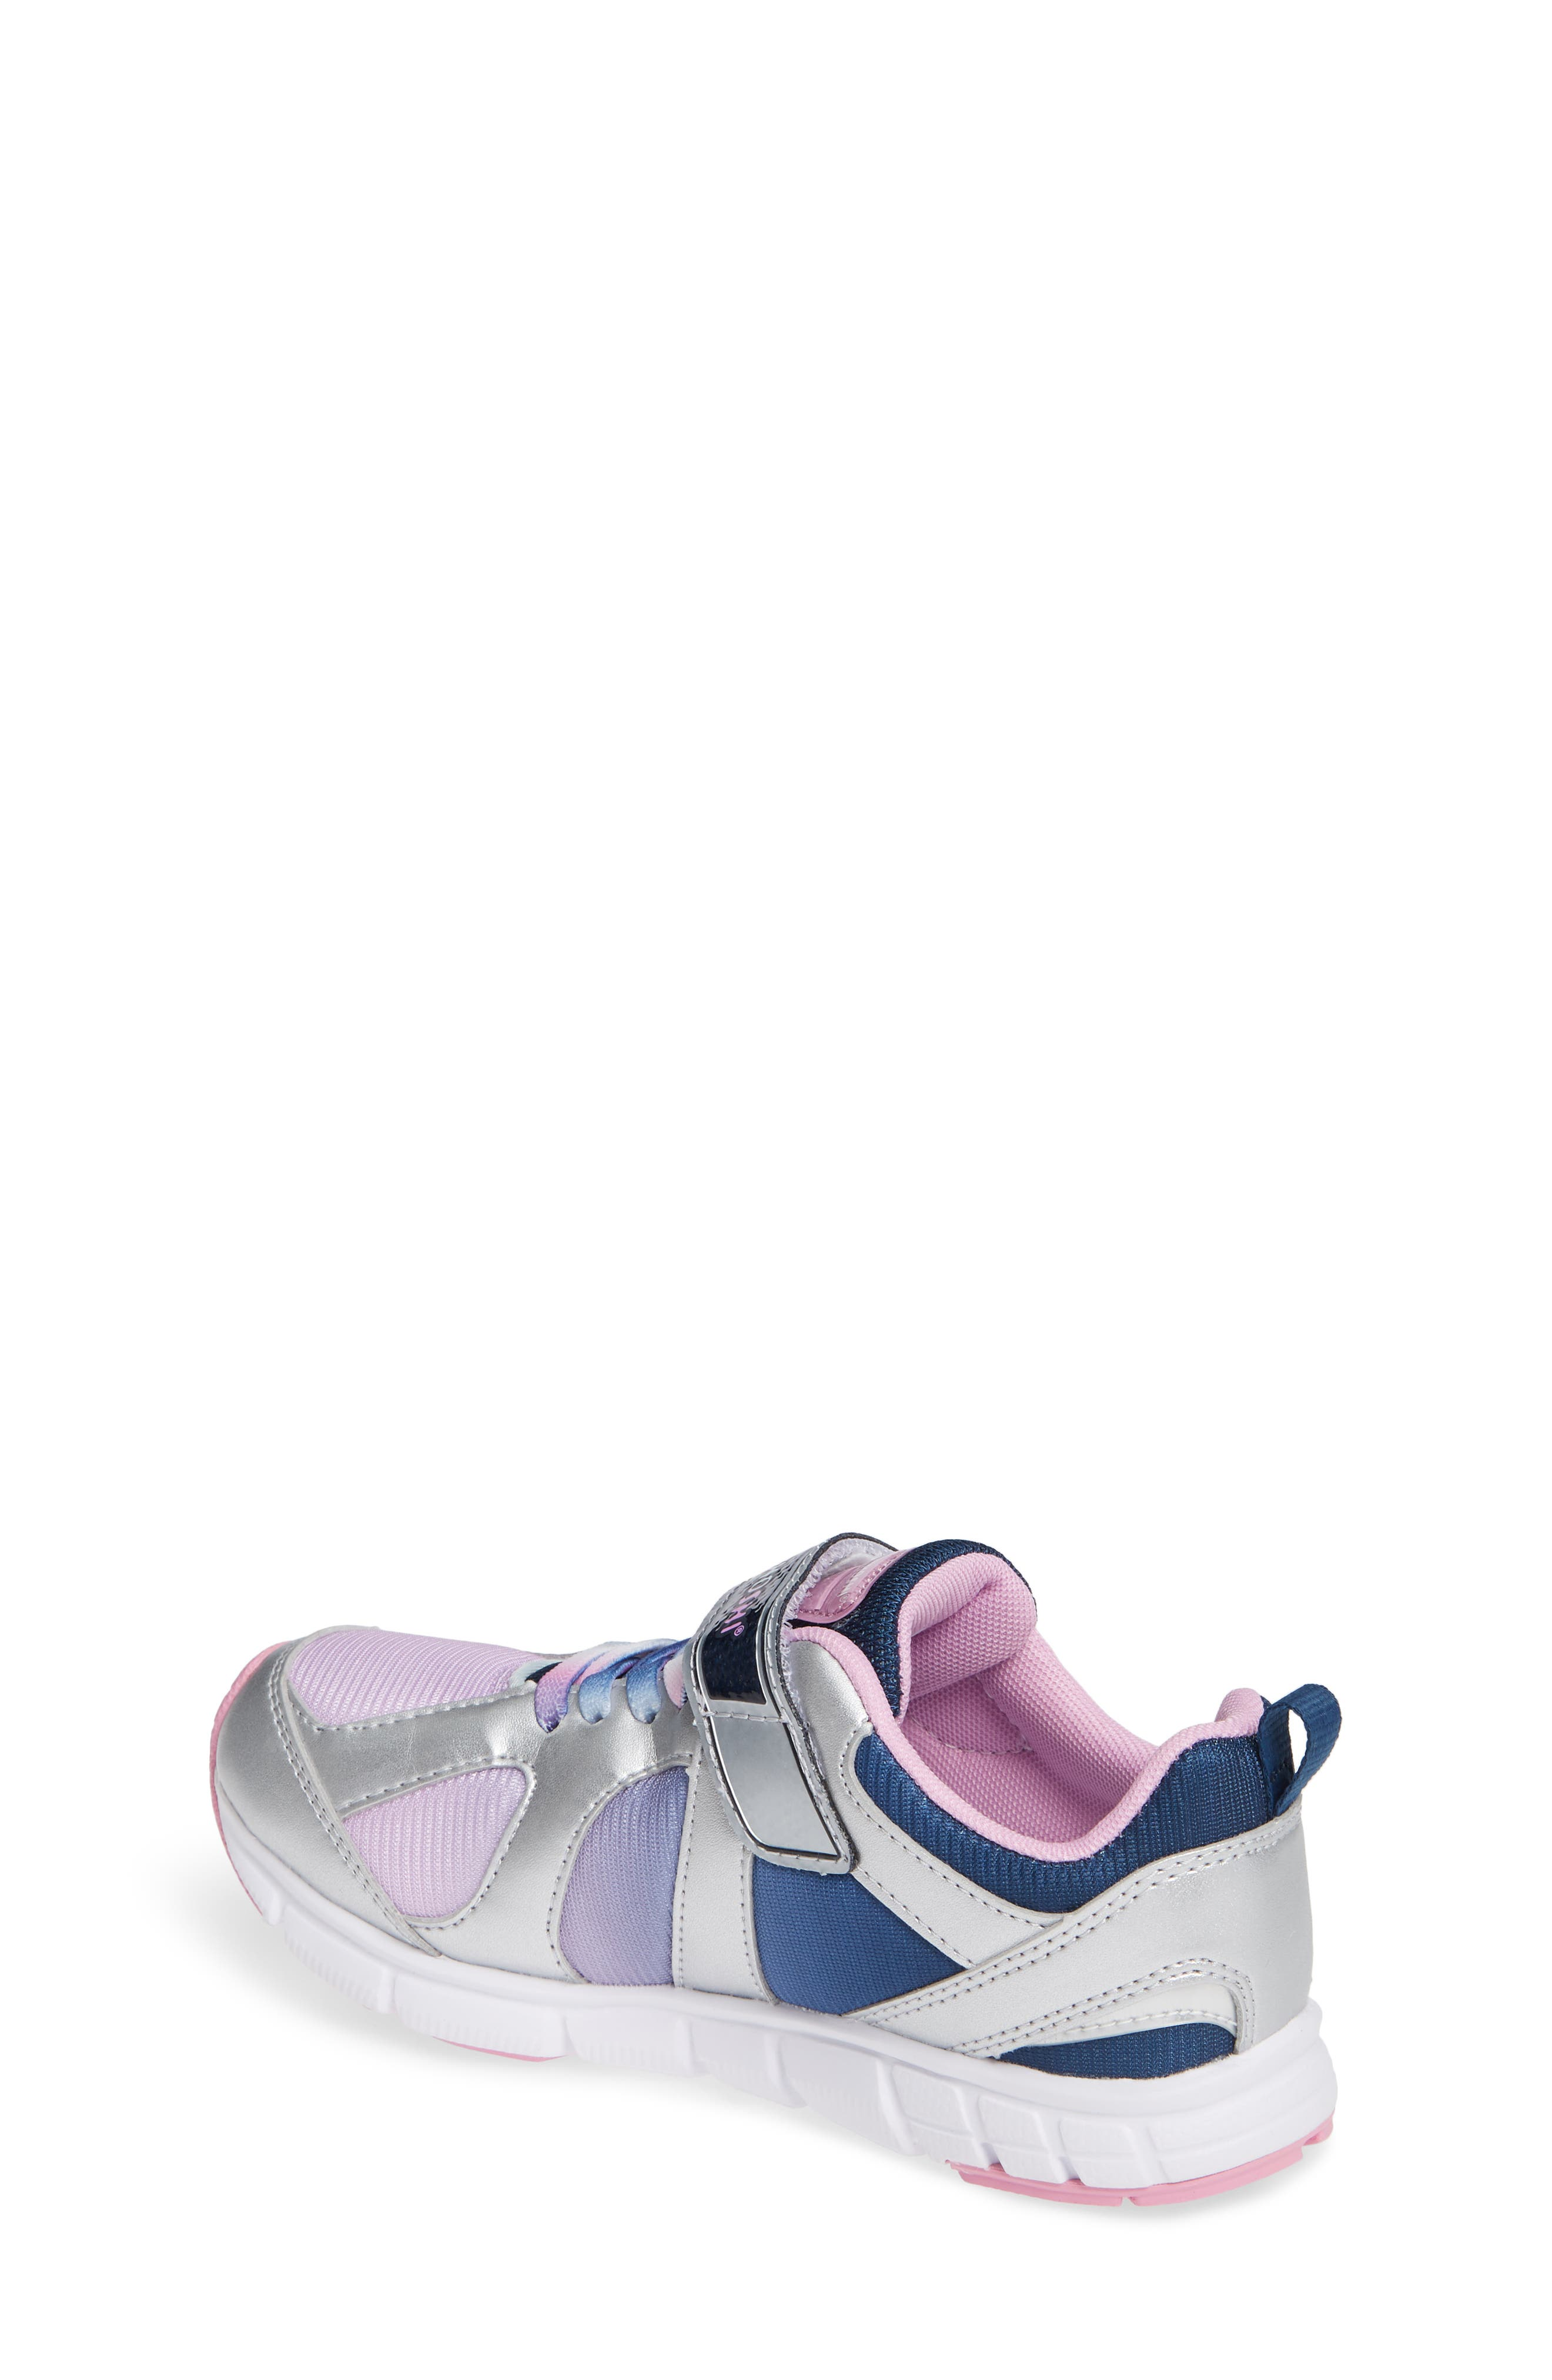 Rainbow Washable Sneaker,                             Alternate thumbnail 2, color,                             SILVER/ NAVY